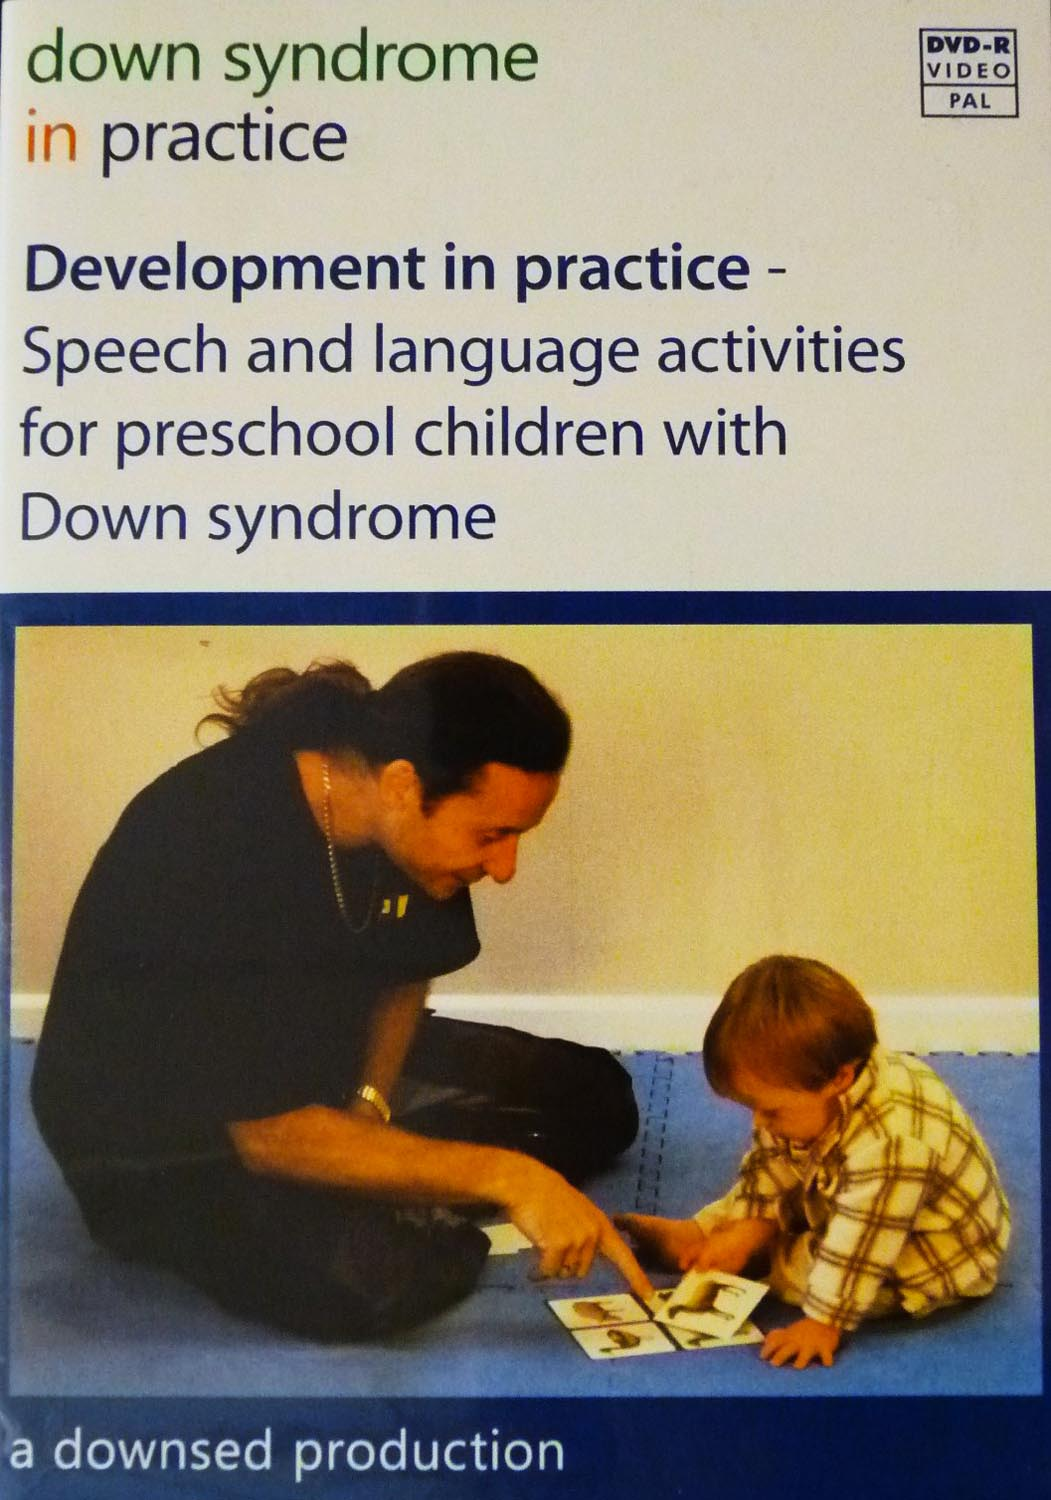 Development in practice – Speech and language activities for preschool children with Down syndrome Image